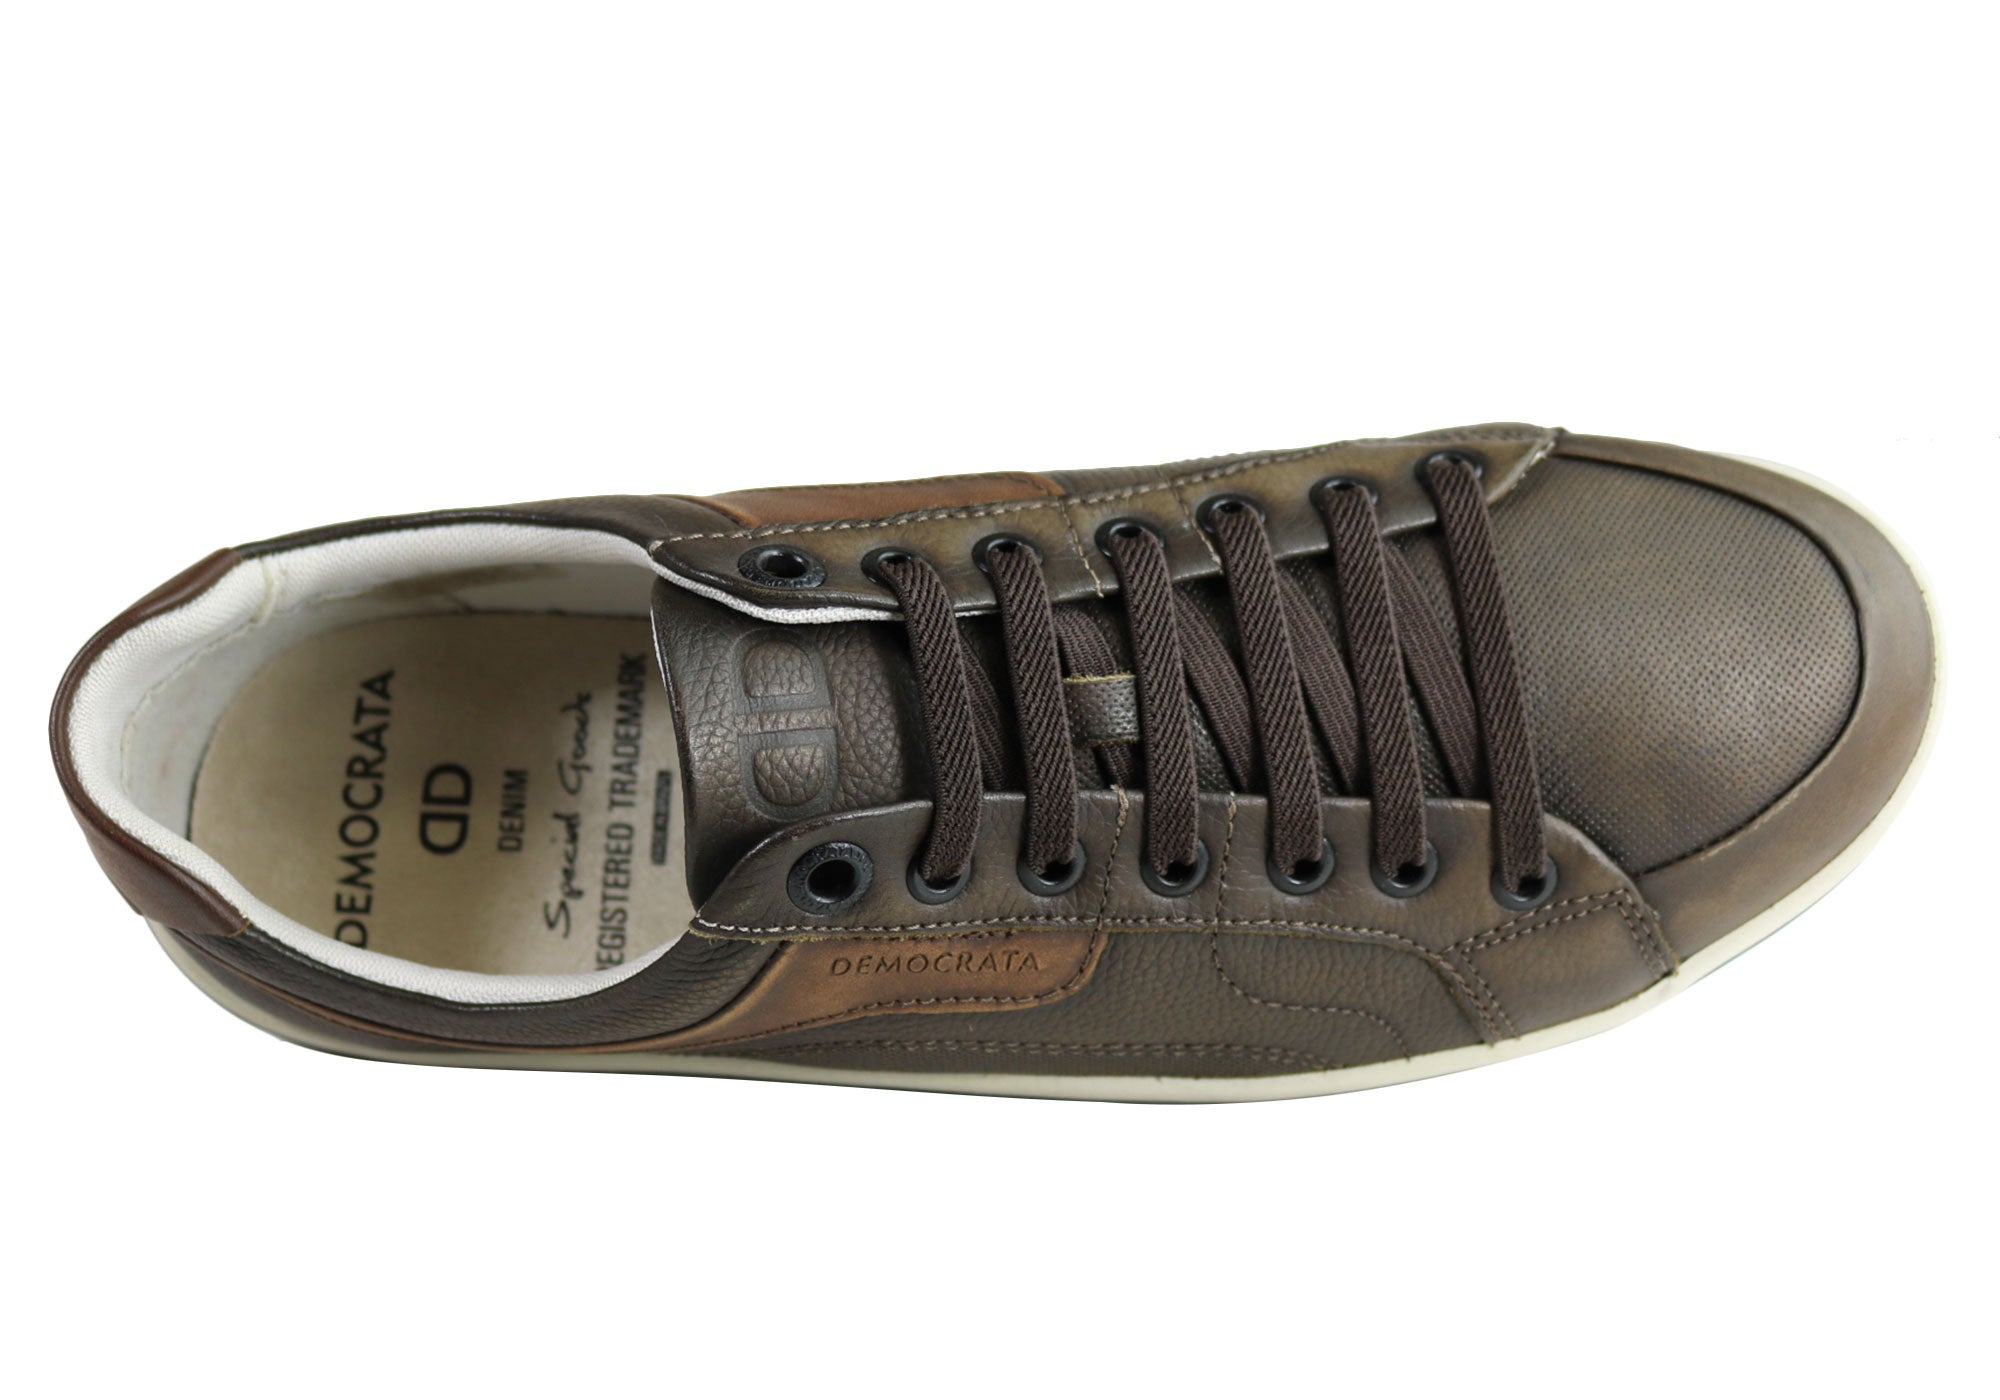 NEW-DEMOCRATA-MILES-MENS-LEATHER-SLIP-ON-CASUAL-SHOES-MADE-IN-BRAZIL thumbnail 3